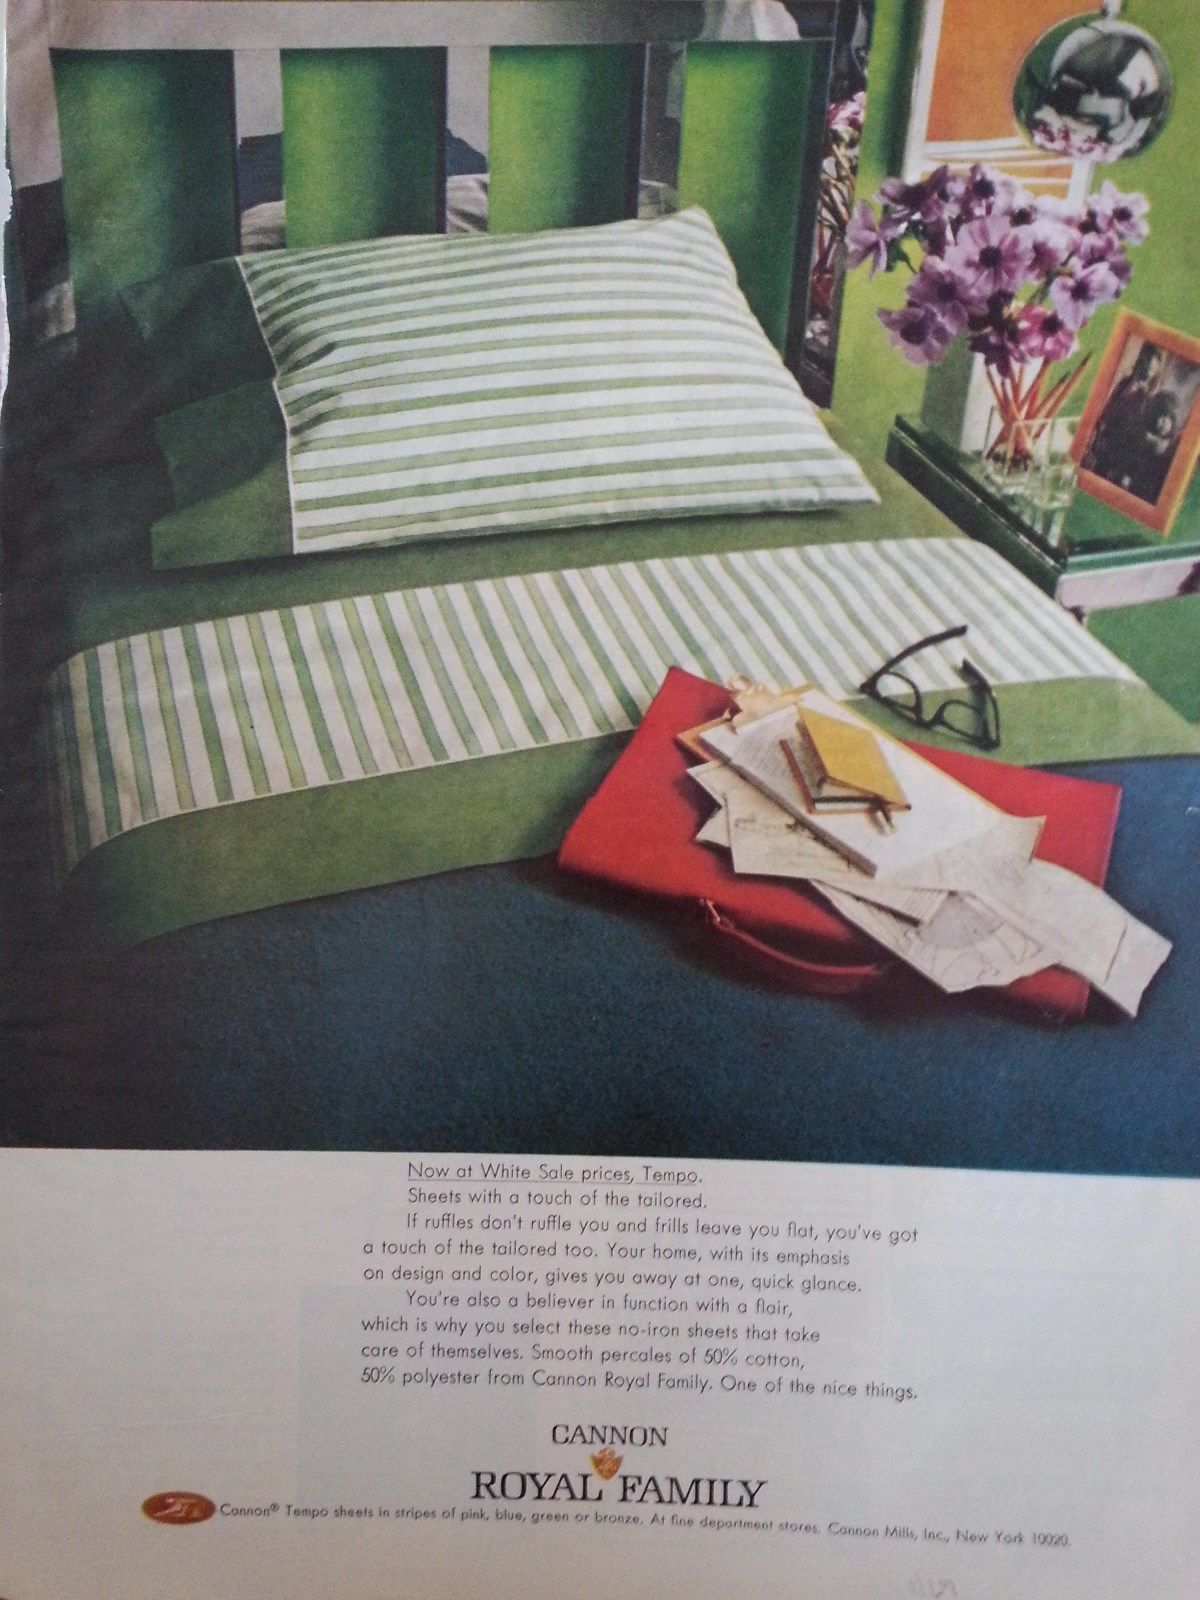 Vintage 1969 Print Ad For Cannon Royal Family U0027Tempou0027 Percale Bed Sheets In  Stripes Of Pink, Blue, Green, Or Bronze.